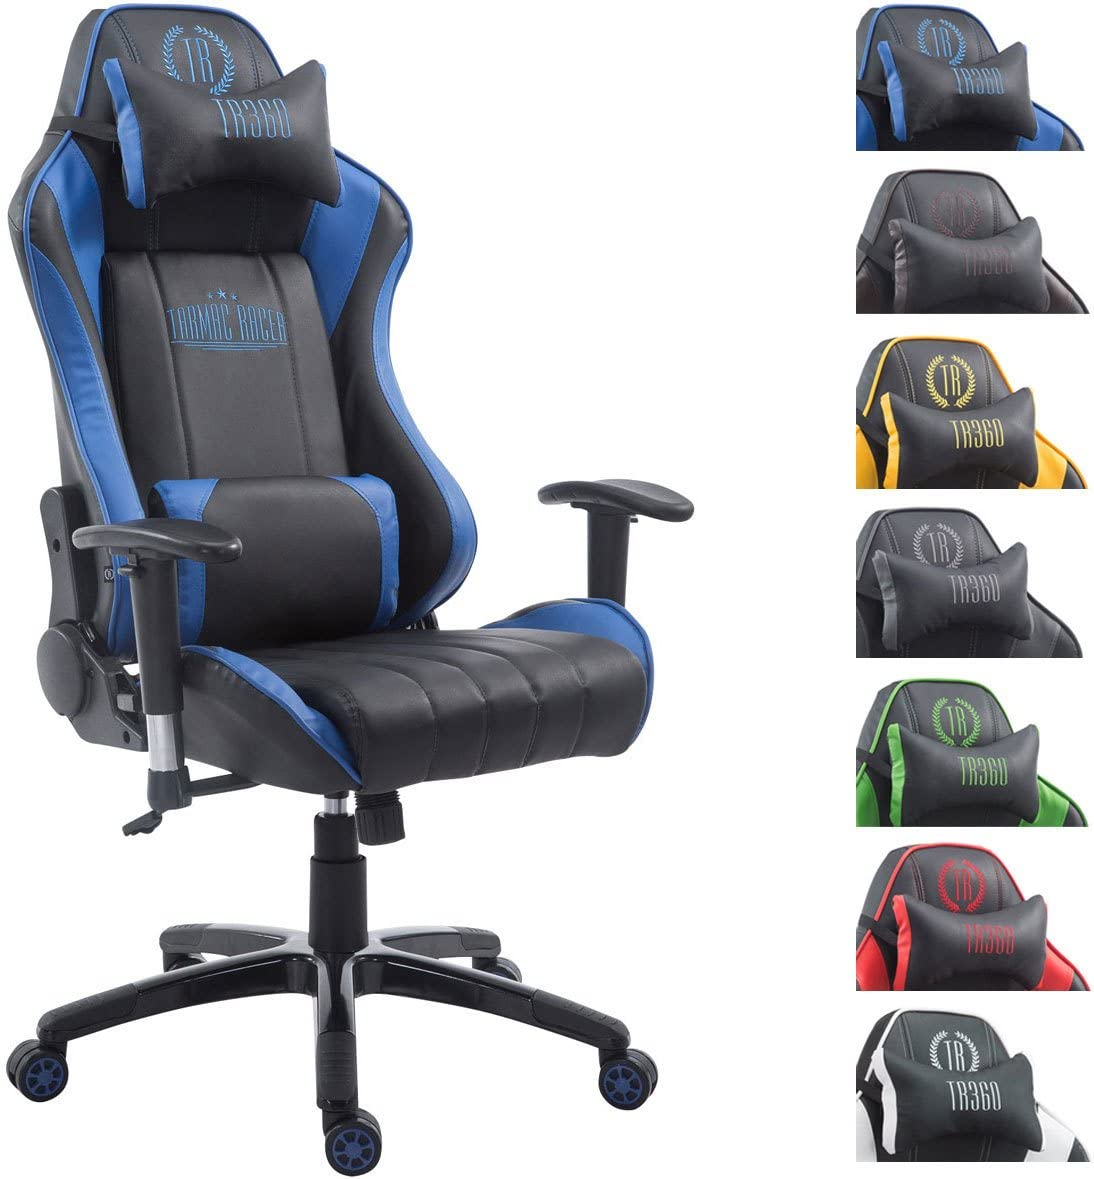 Silla Gamer Shift XL En Piel Sintética I Silla Gaming Ajustable I ...